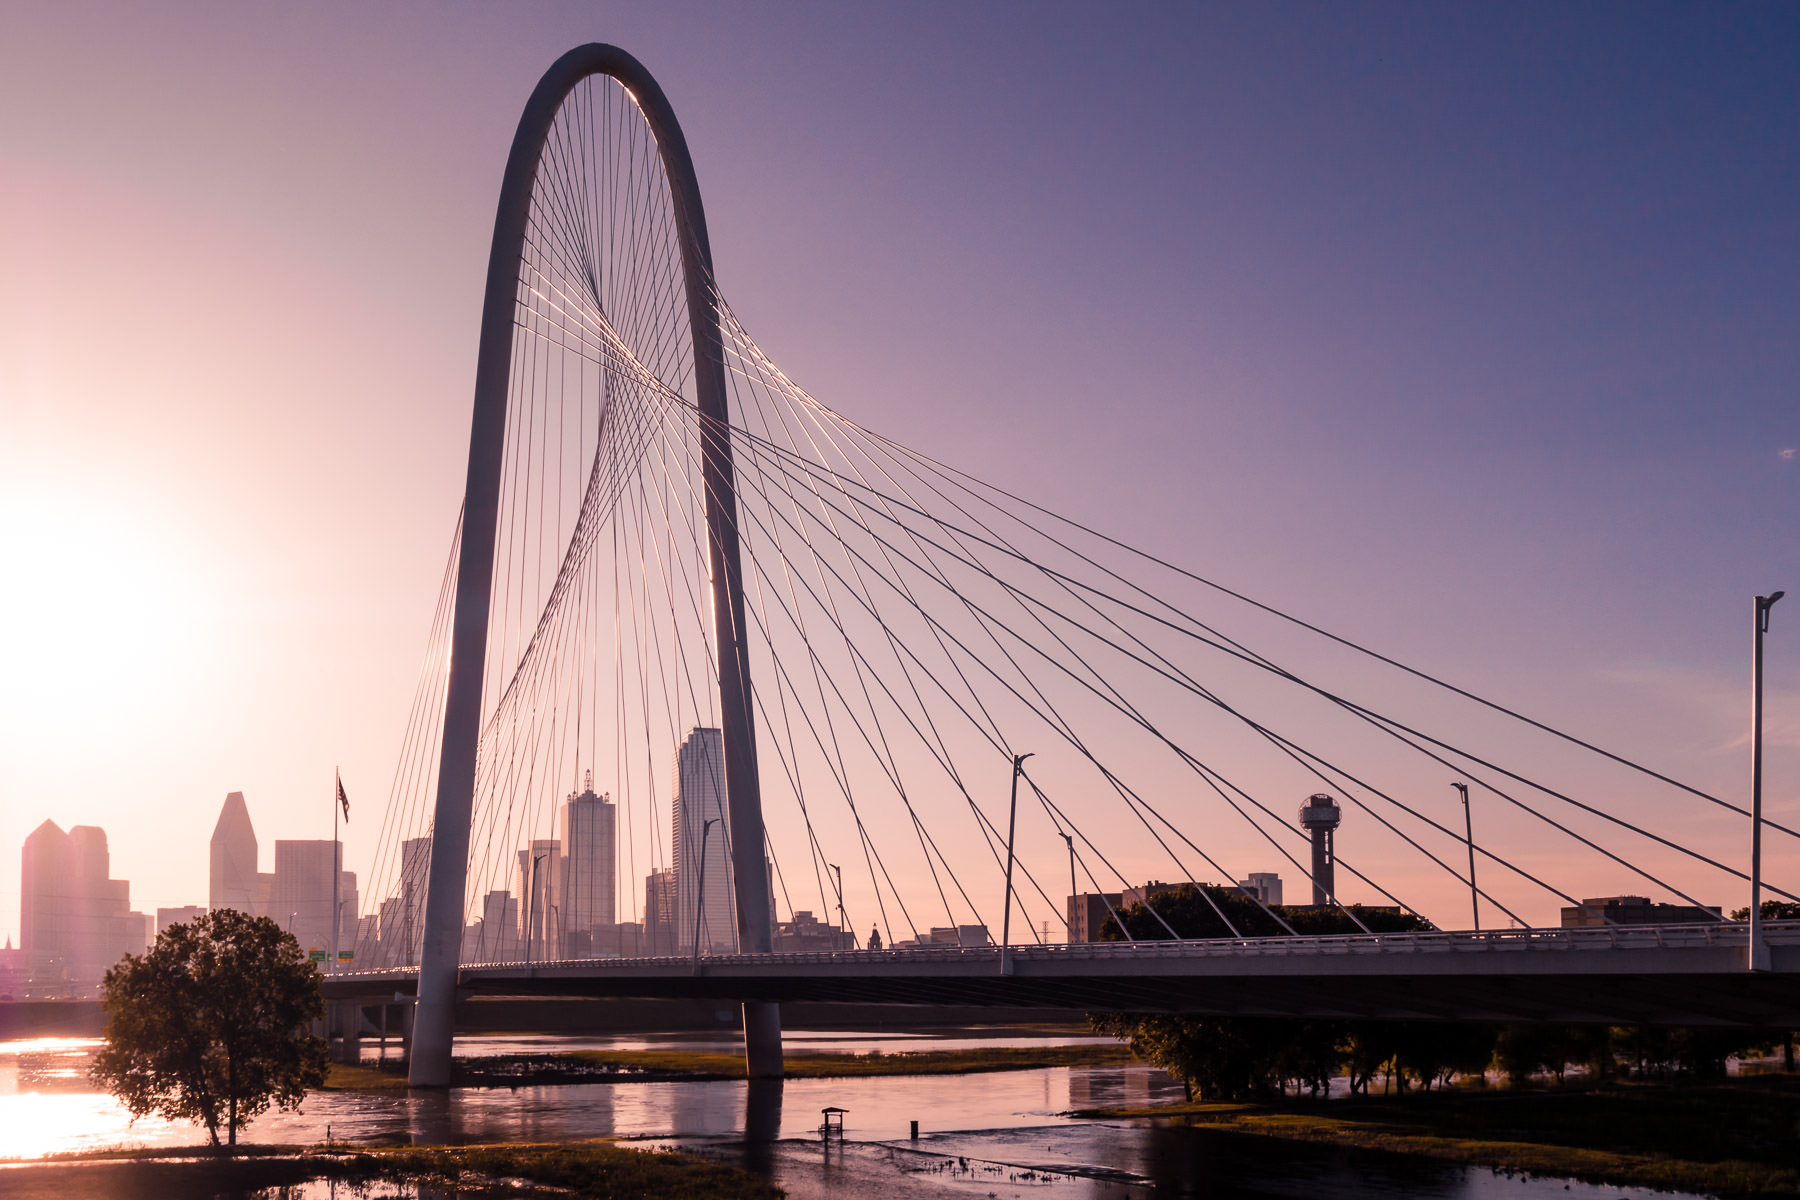 The sun rises on the Santiago Calatrava-designed Margaret Hunt Hill Bridge, Dallas, Texas.